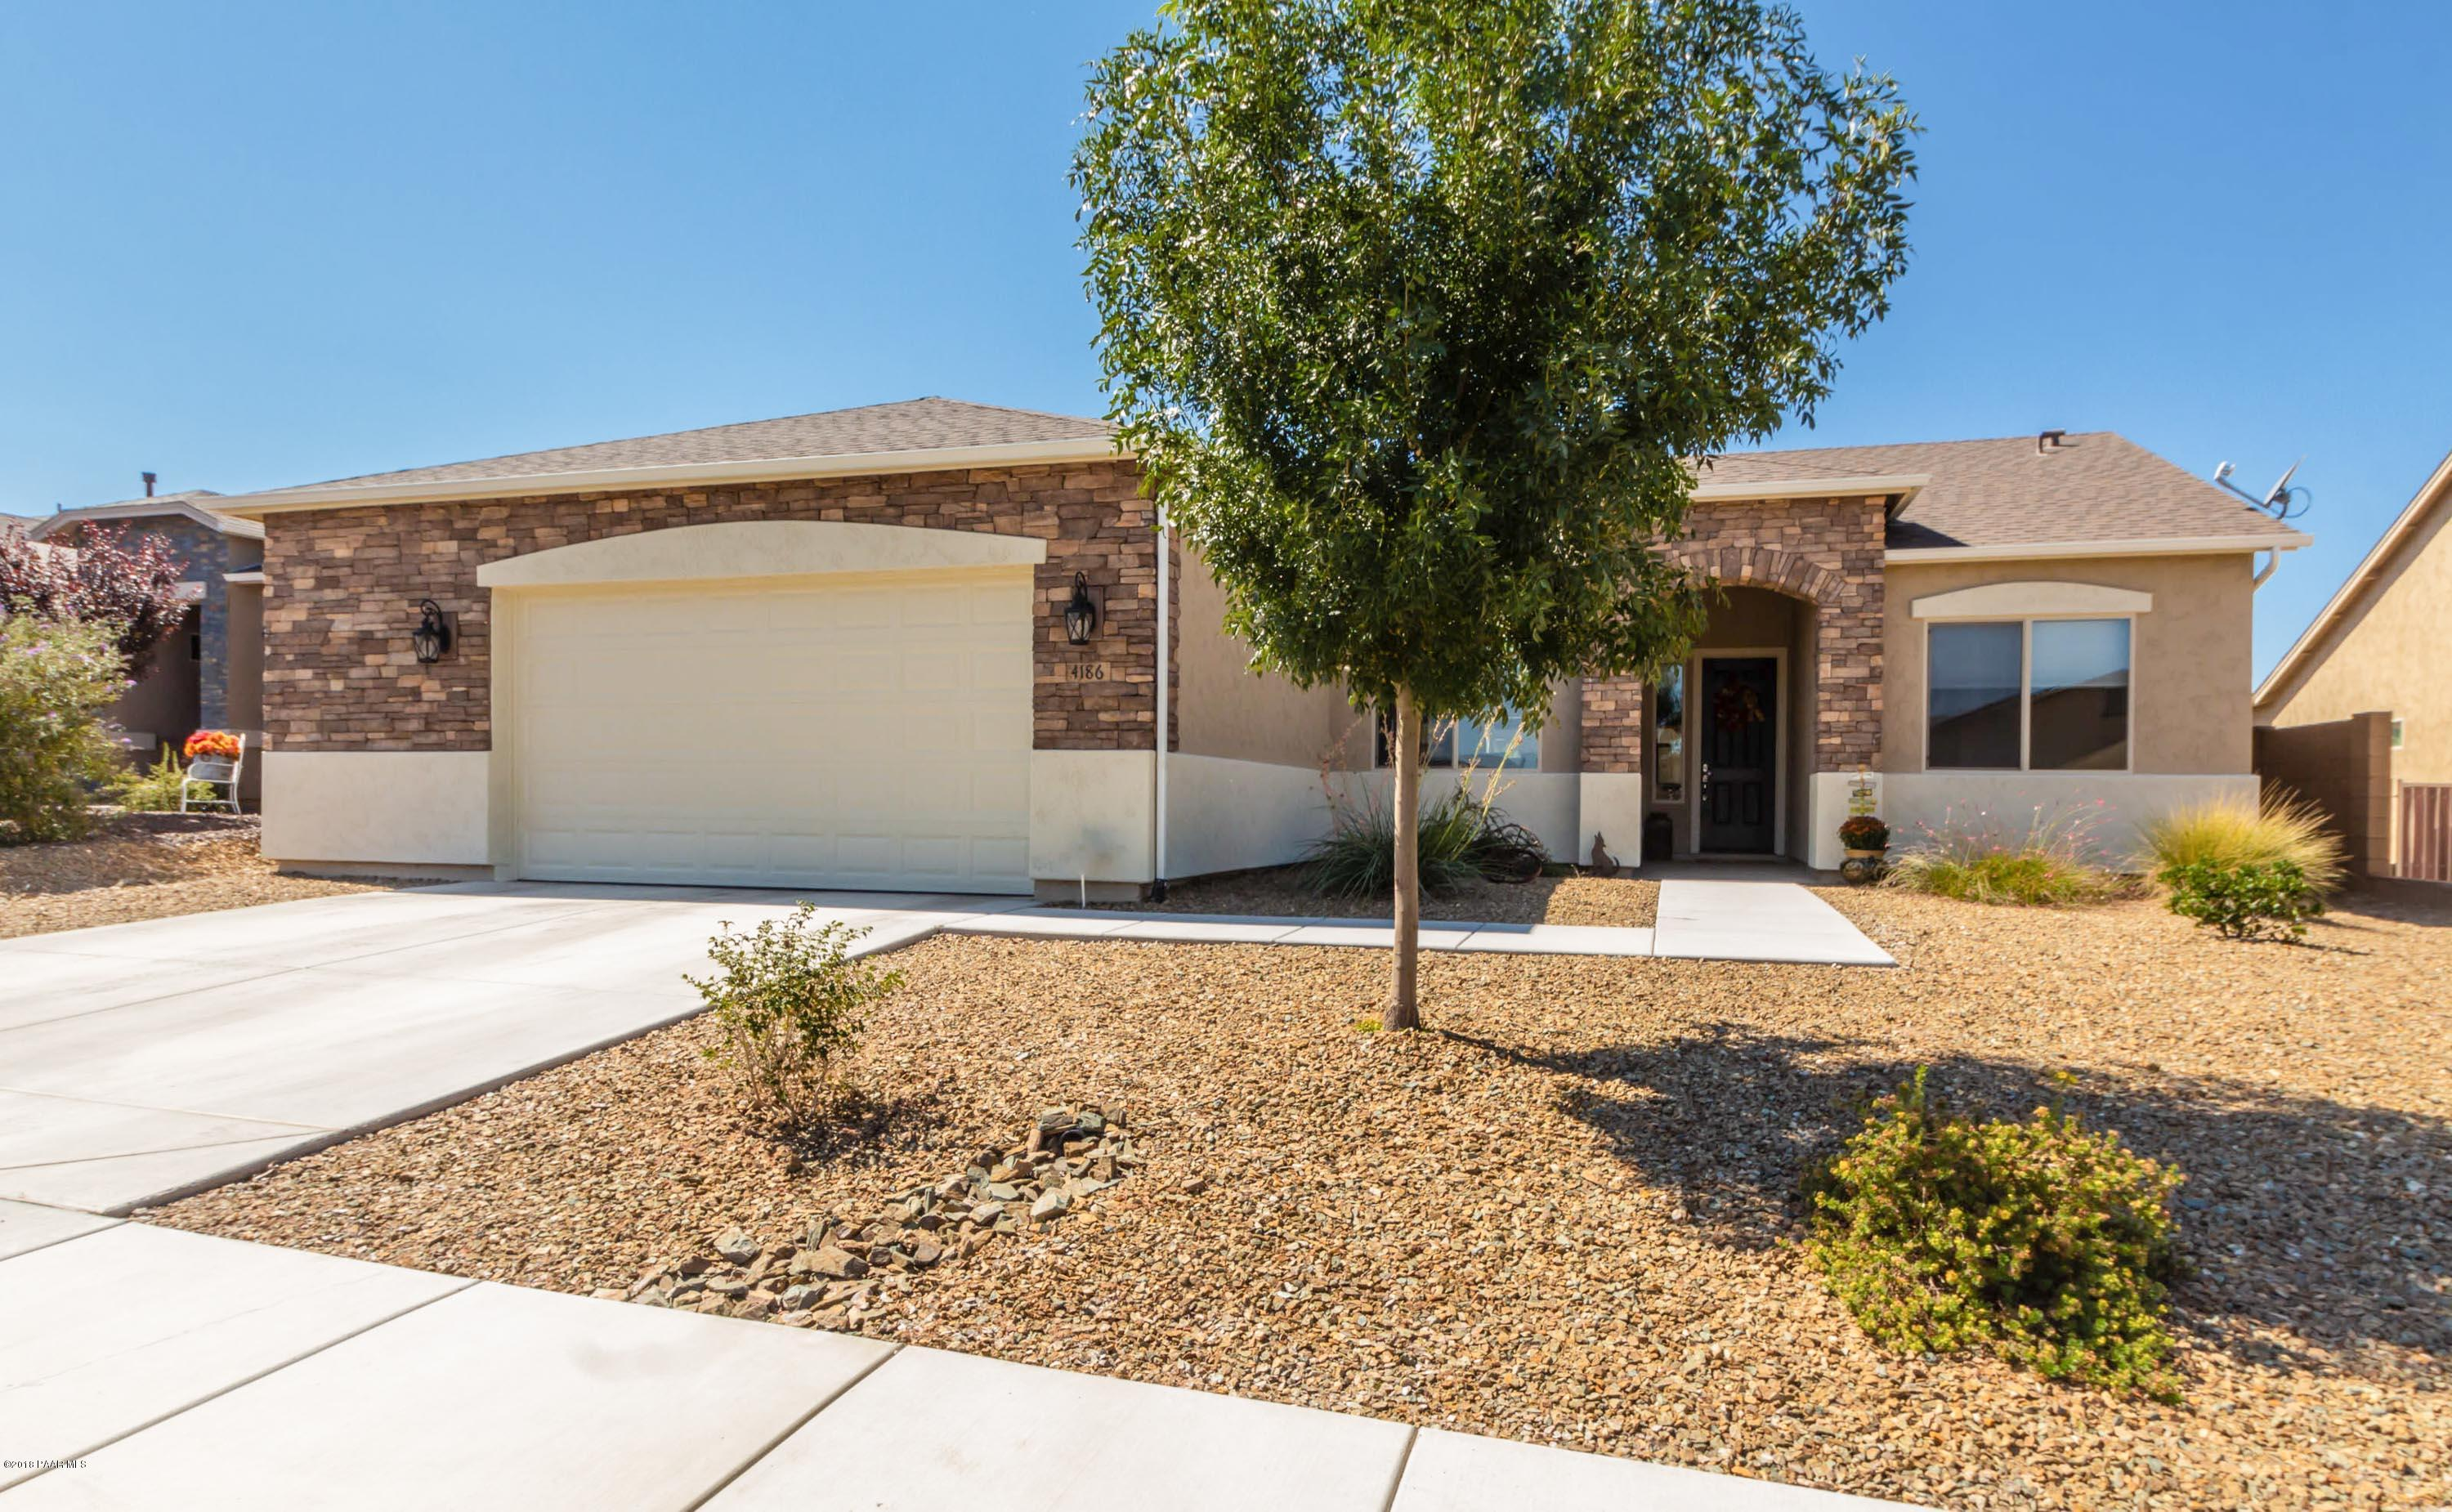 Photo of 4186 Bainsbury, Prescott Valley, AZ 86314